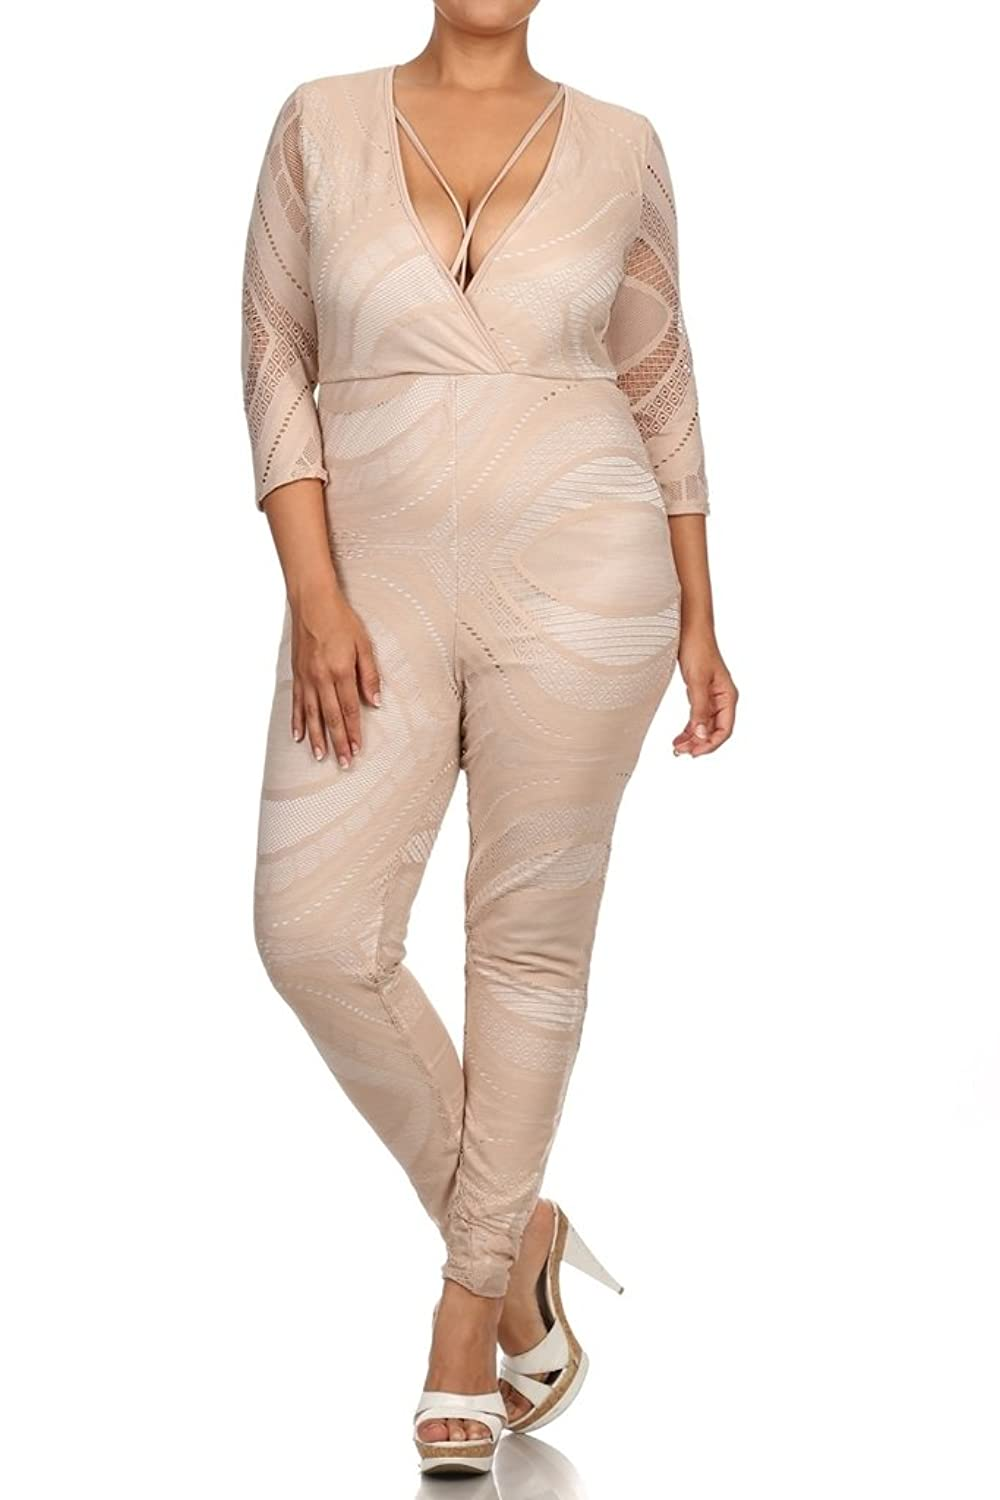 (Plus Size) One Shoulder Wide Leg Double Slit Wrap Jumpsuit (MADE IN U.S.A)